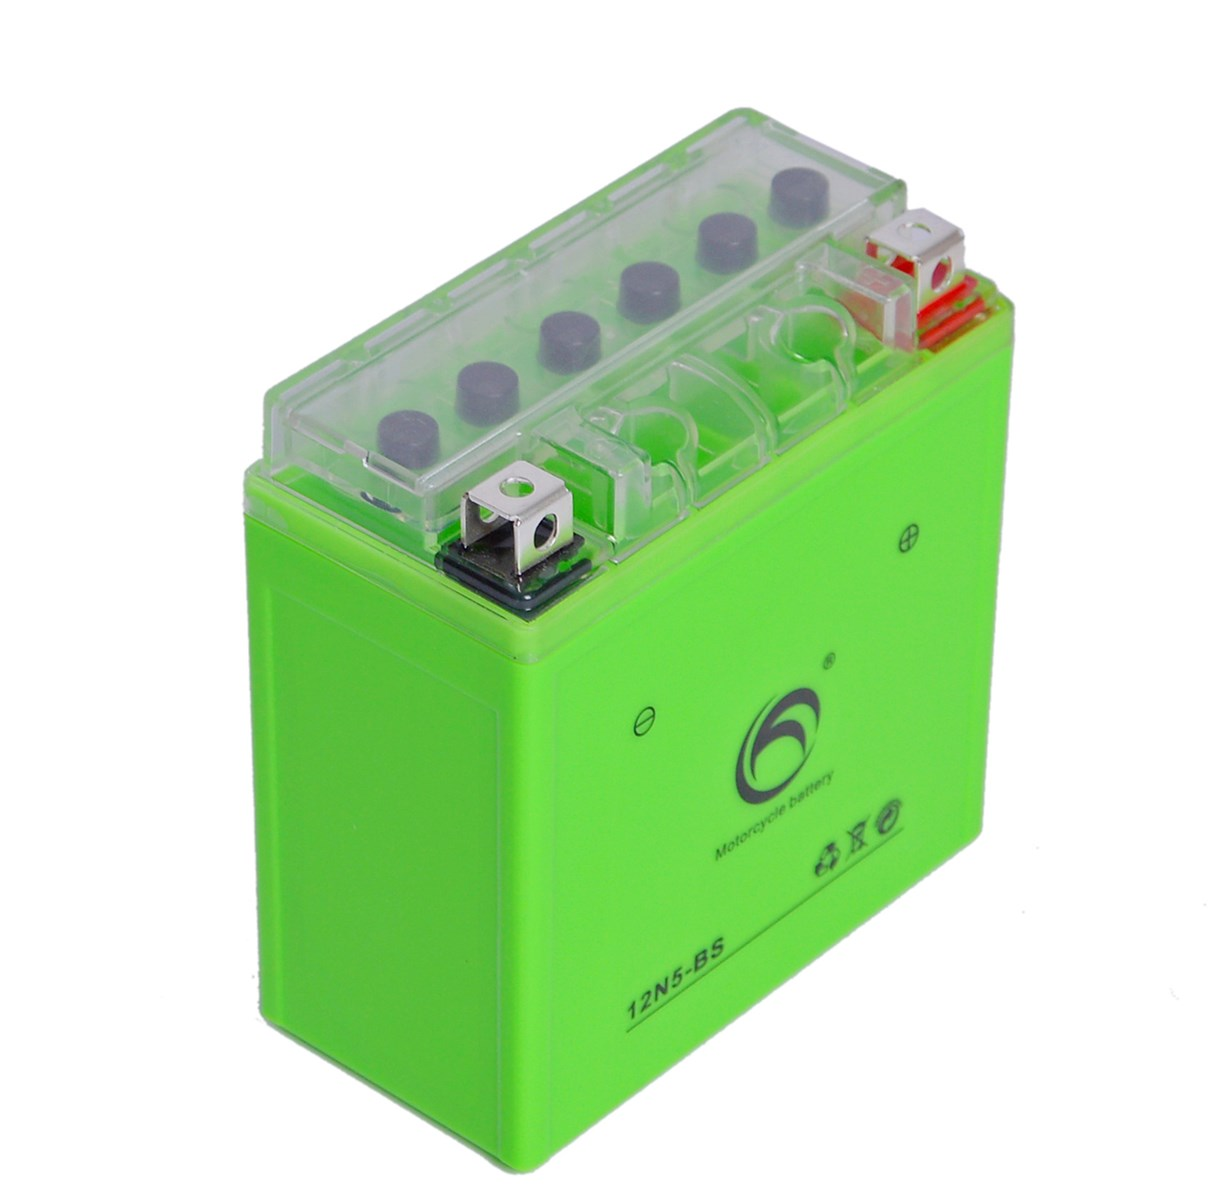 Guangdong Kejian Gel Style 12n5-BS 12V 5ah Dry Motorcycle Battery